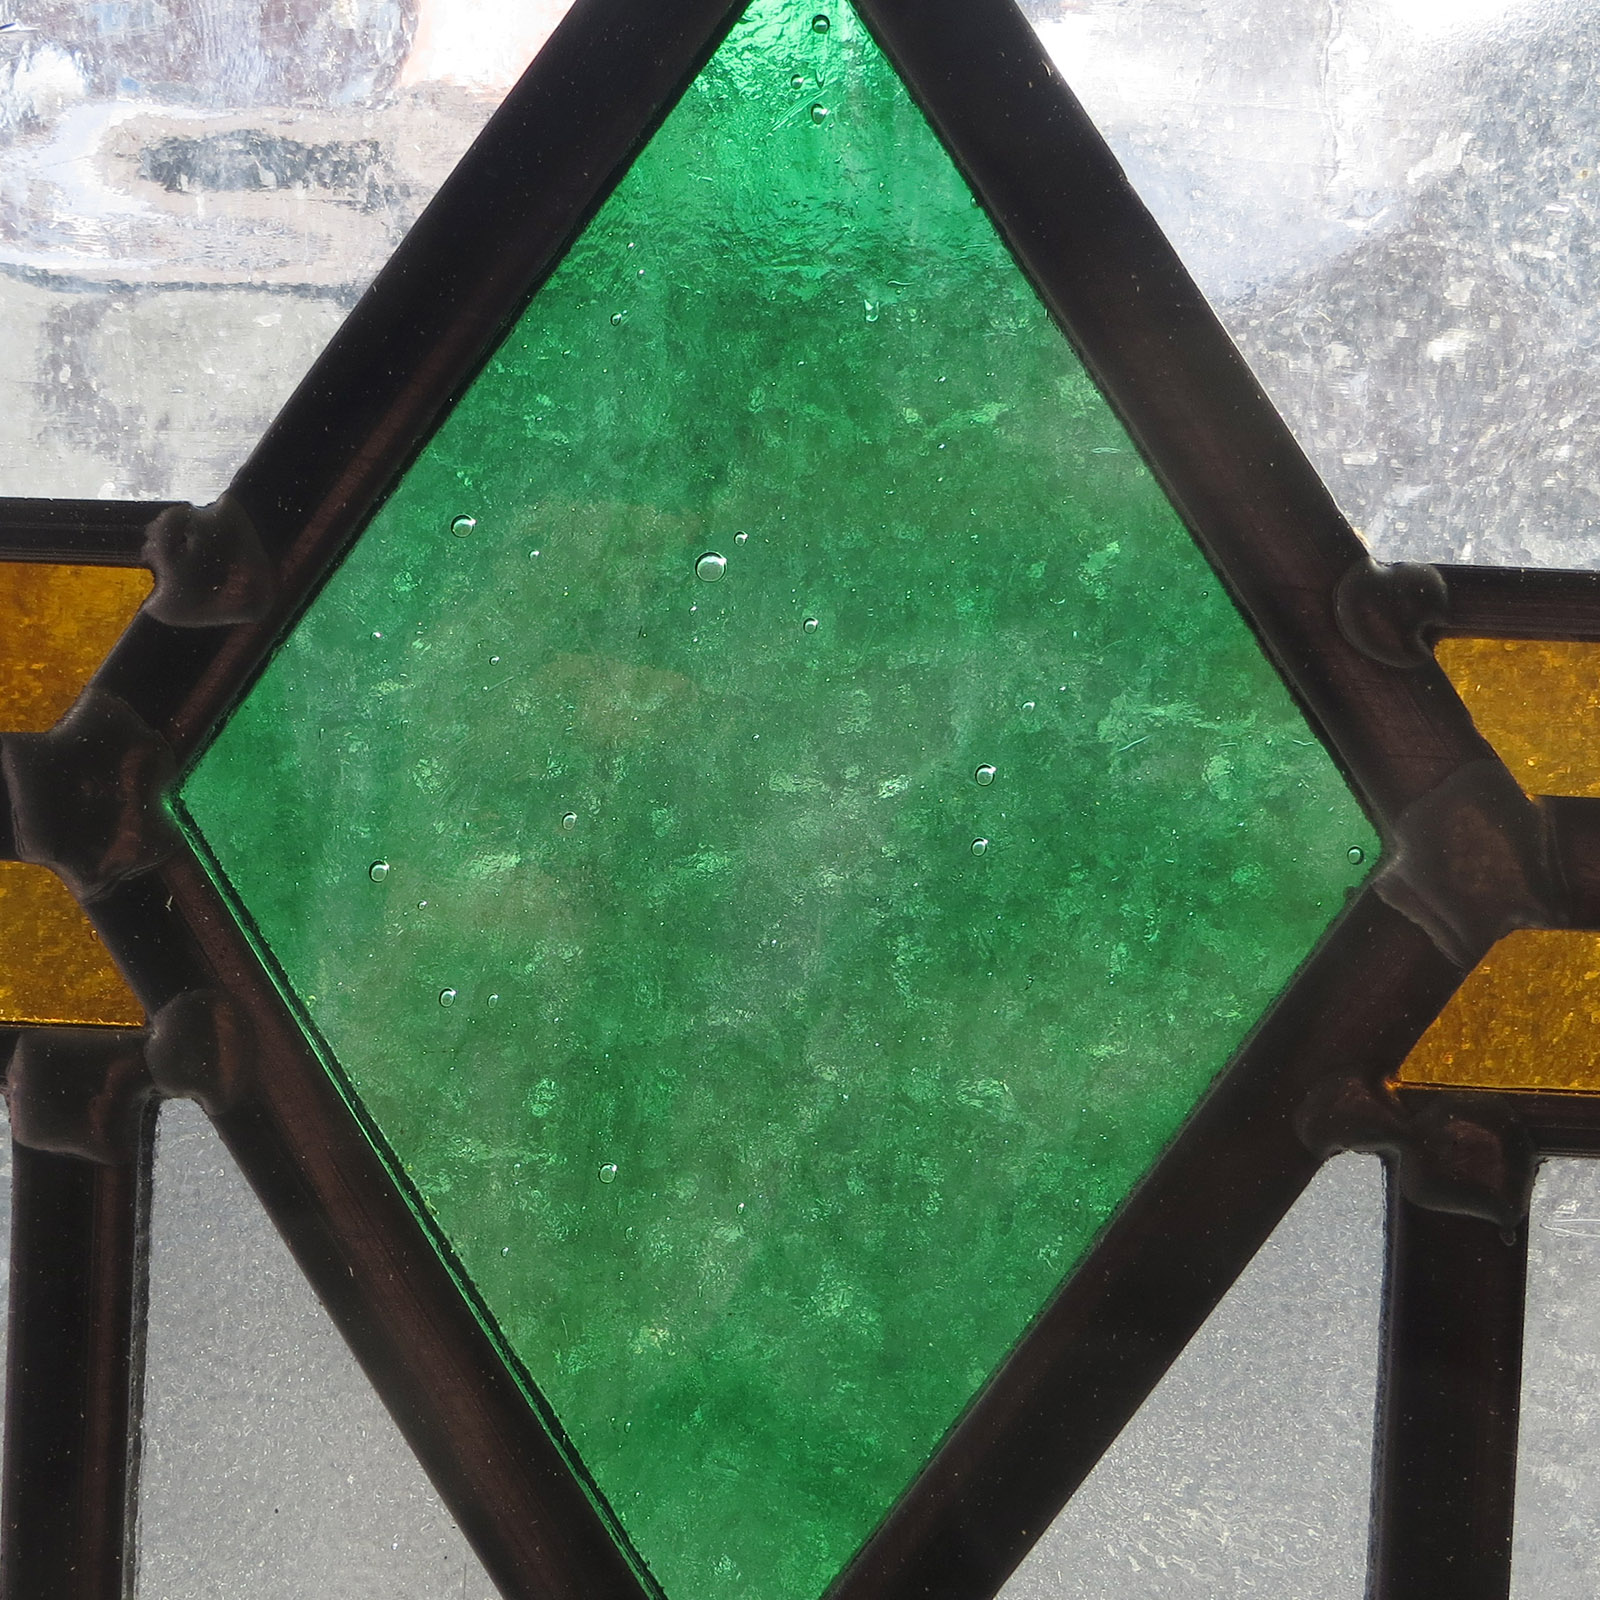 Art Deco Stained Glass 1930s Panel From Period Home Style